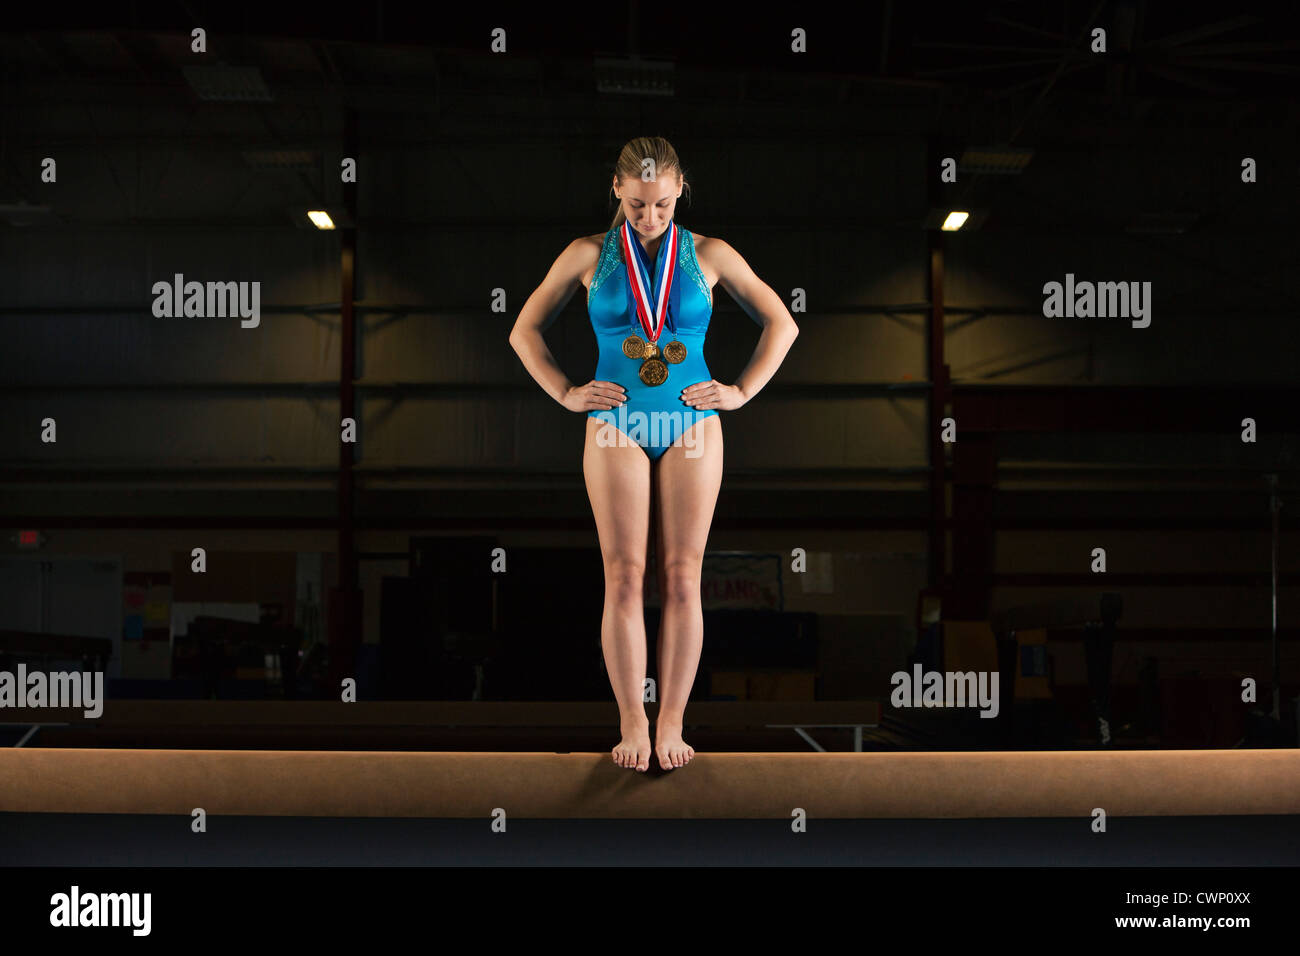 Gymnast with medals standing on balance beam - Stock Image